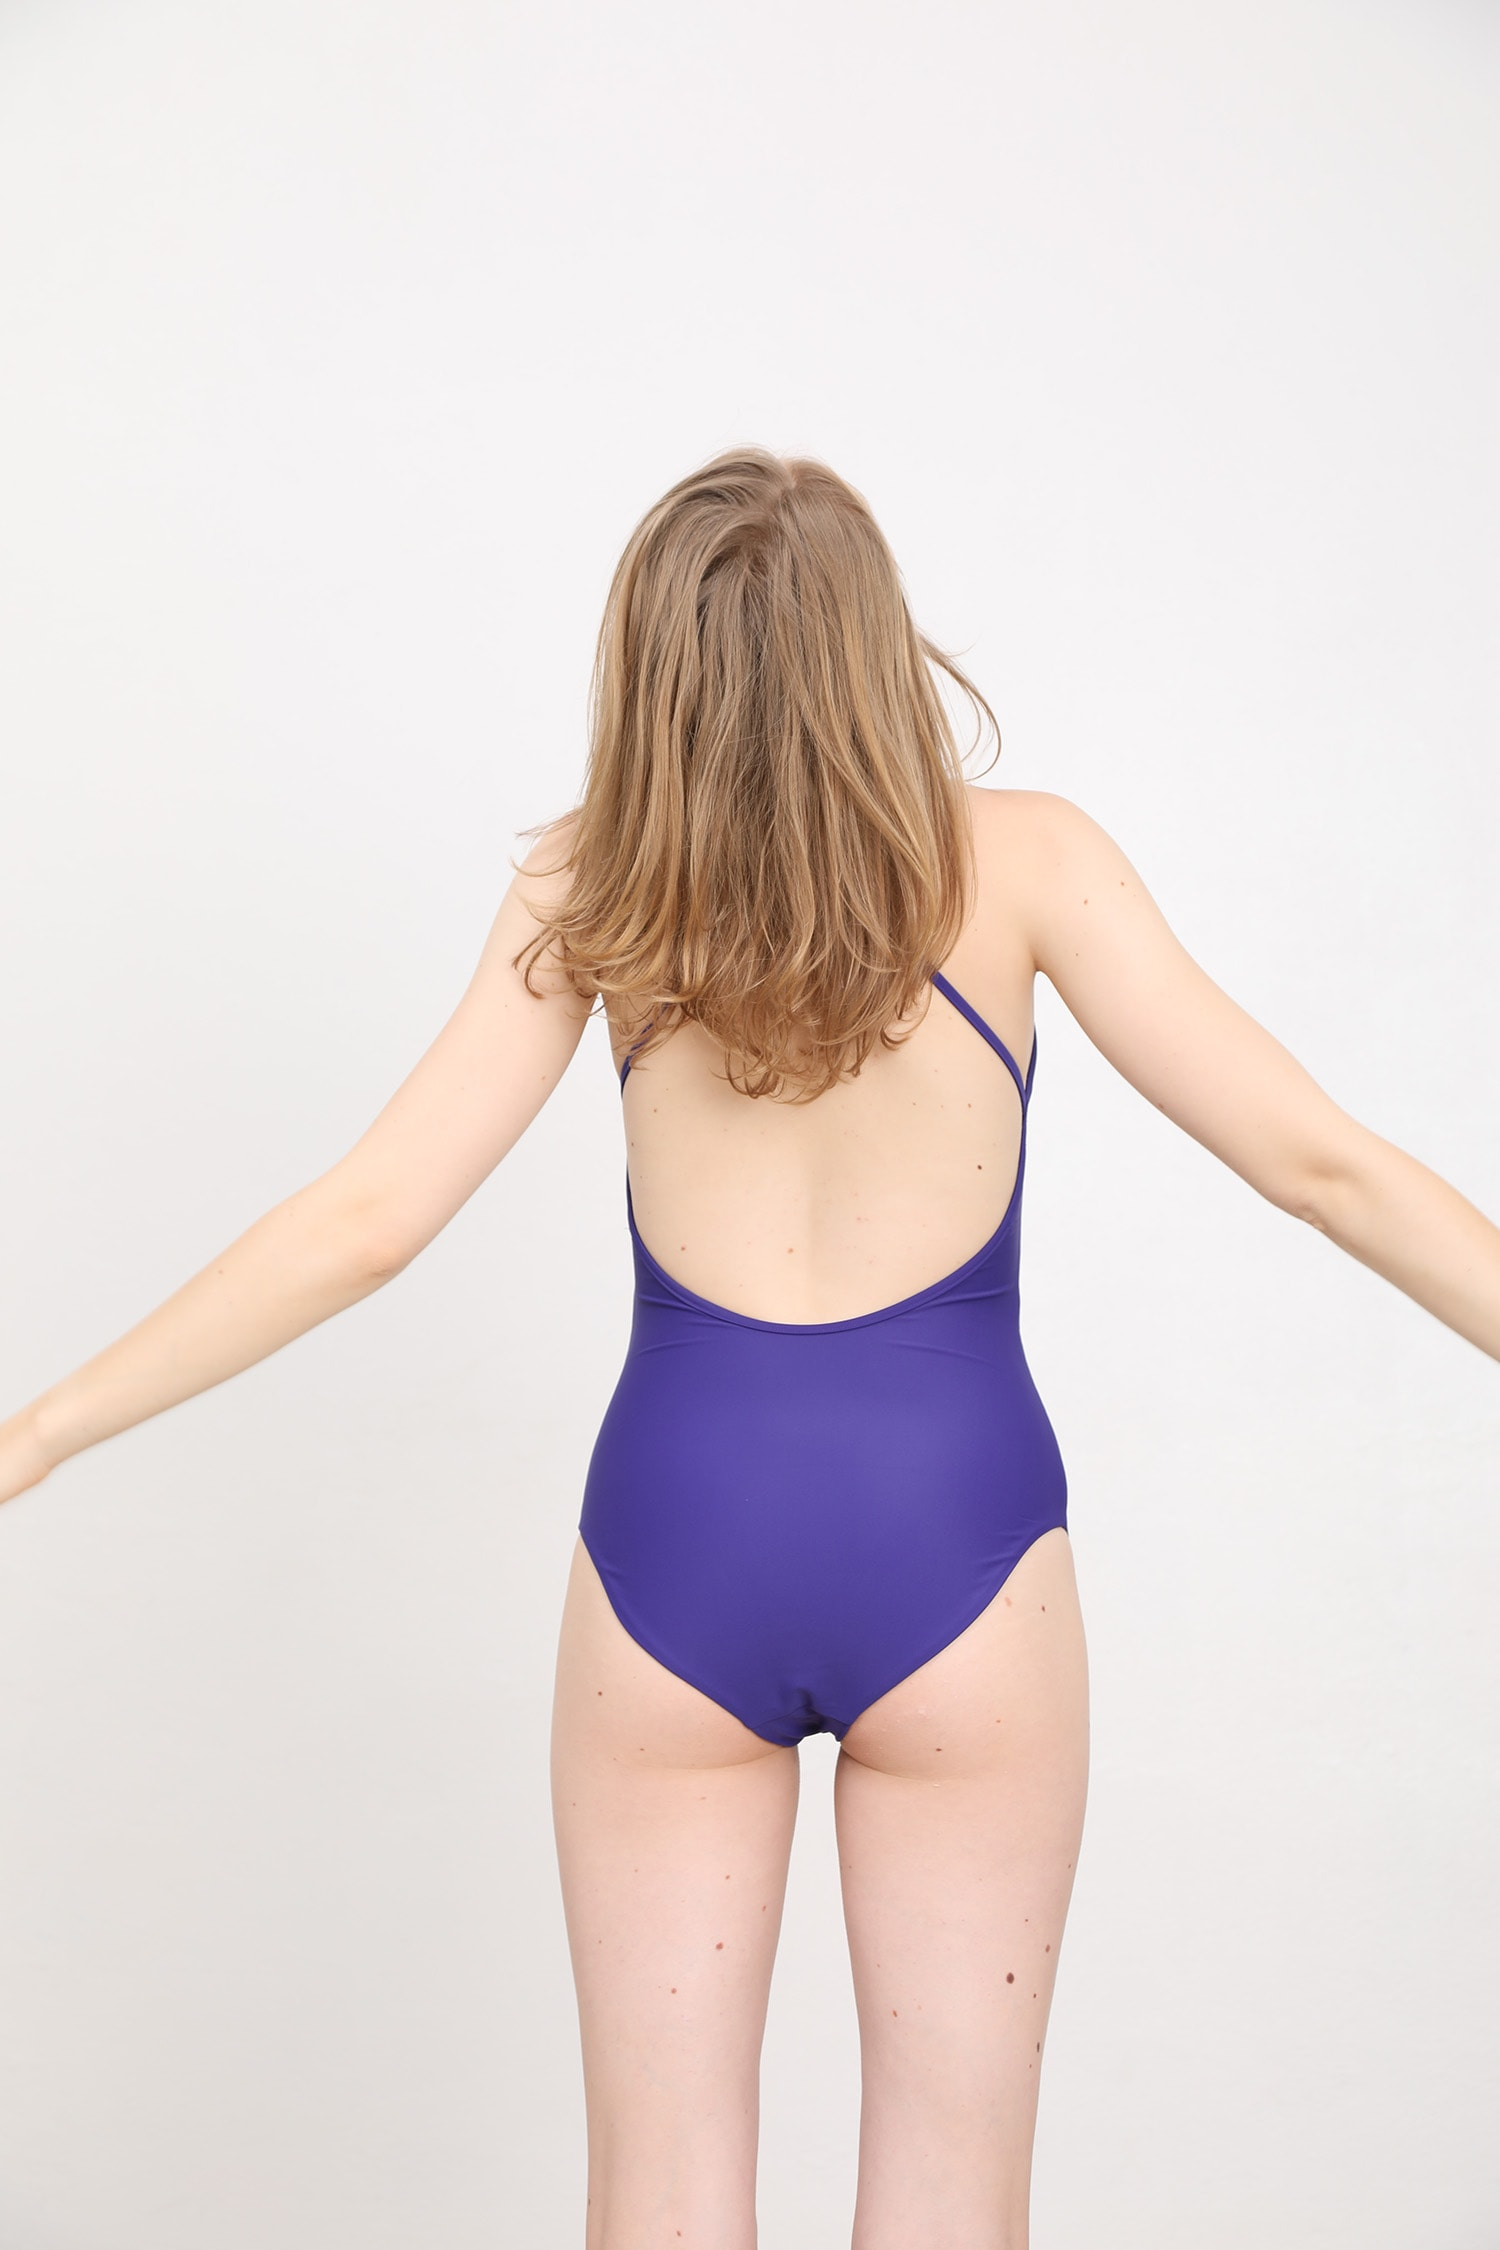 margaret and hermione_ss19_swimsuit no2_violet_154,00eur_hinten_online